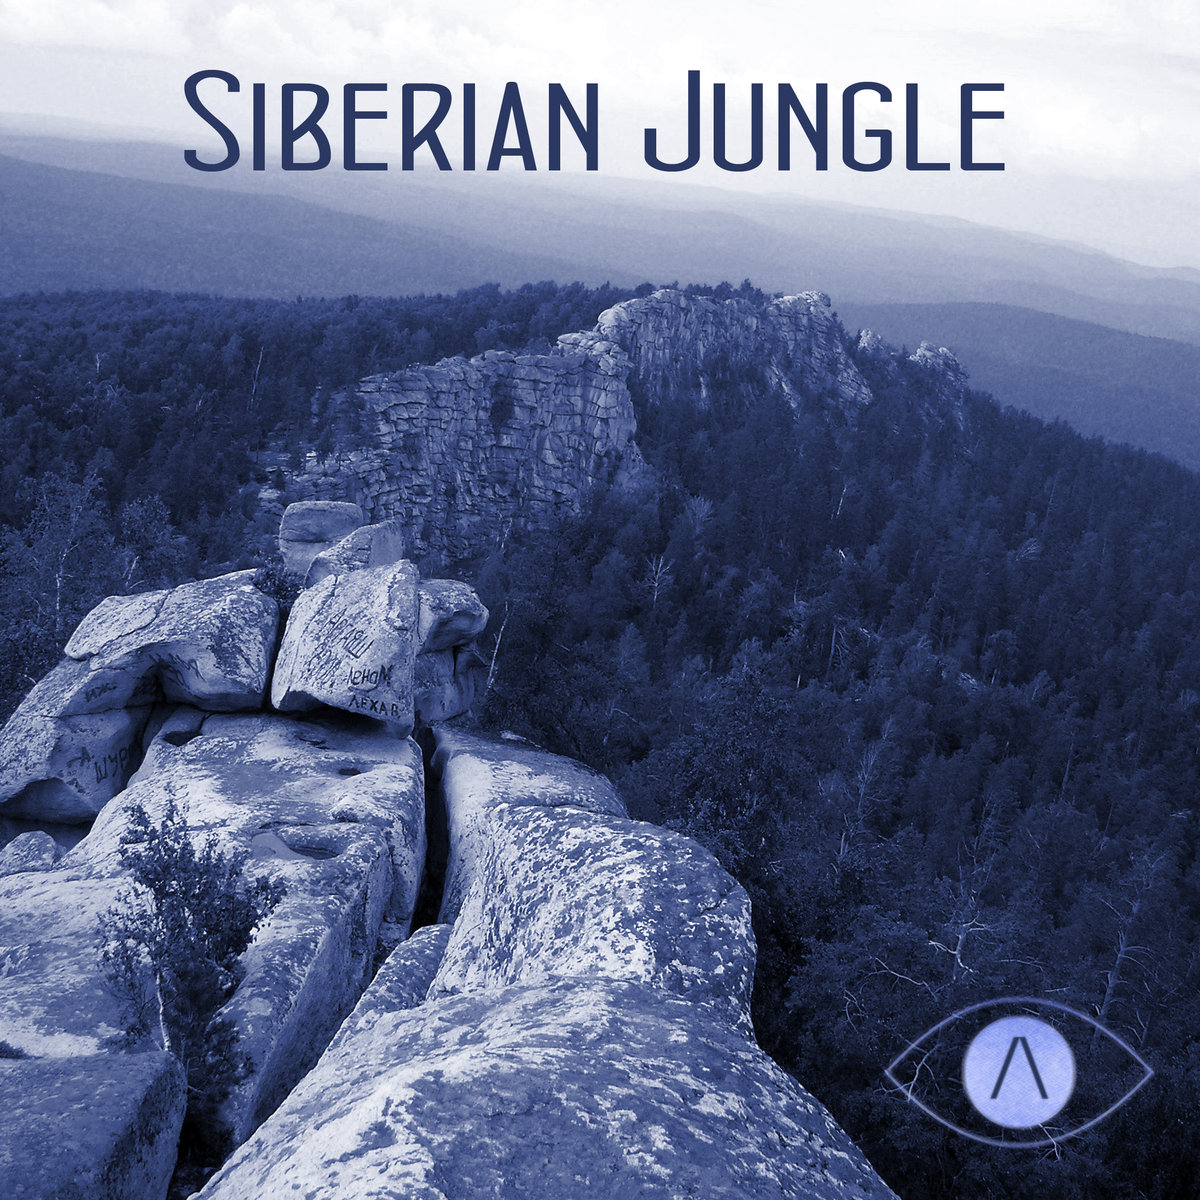 Susanin - Rain @ 'Siberian Jungle - Volume 2' album (electronic, ambient)